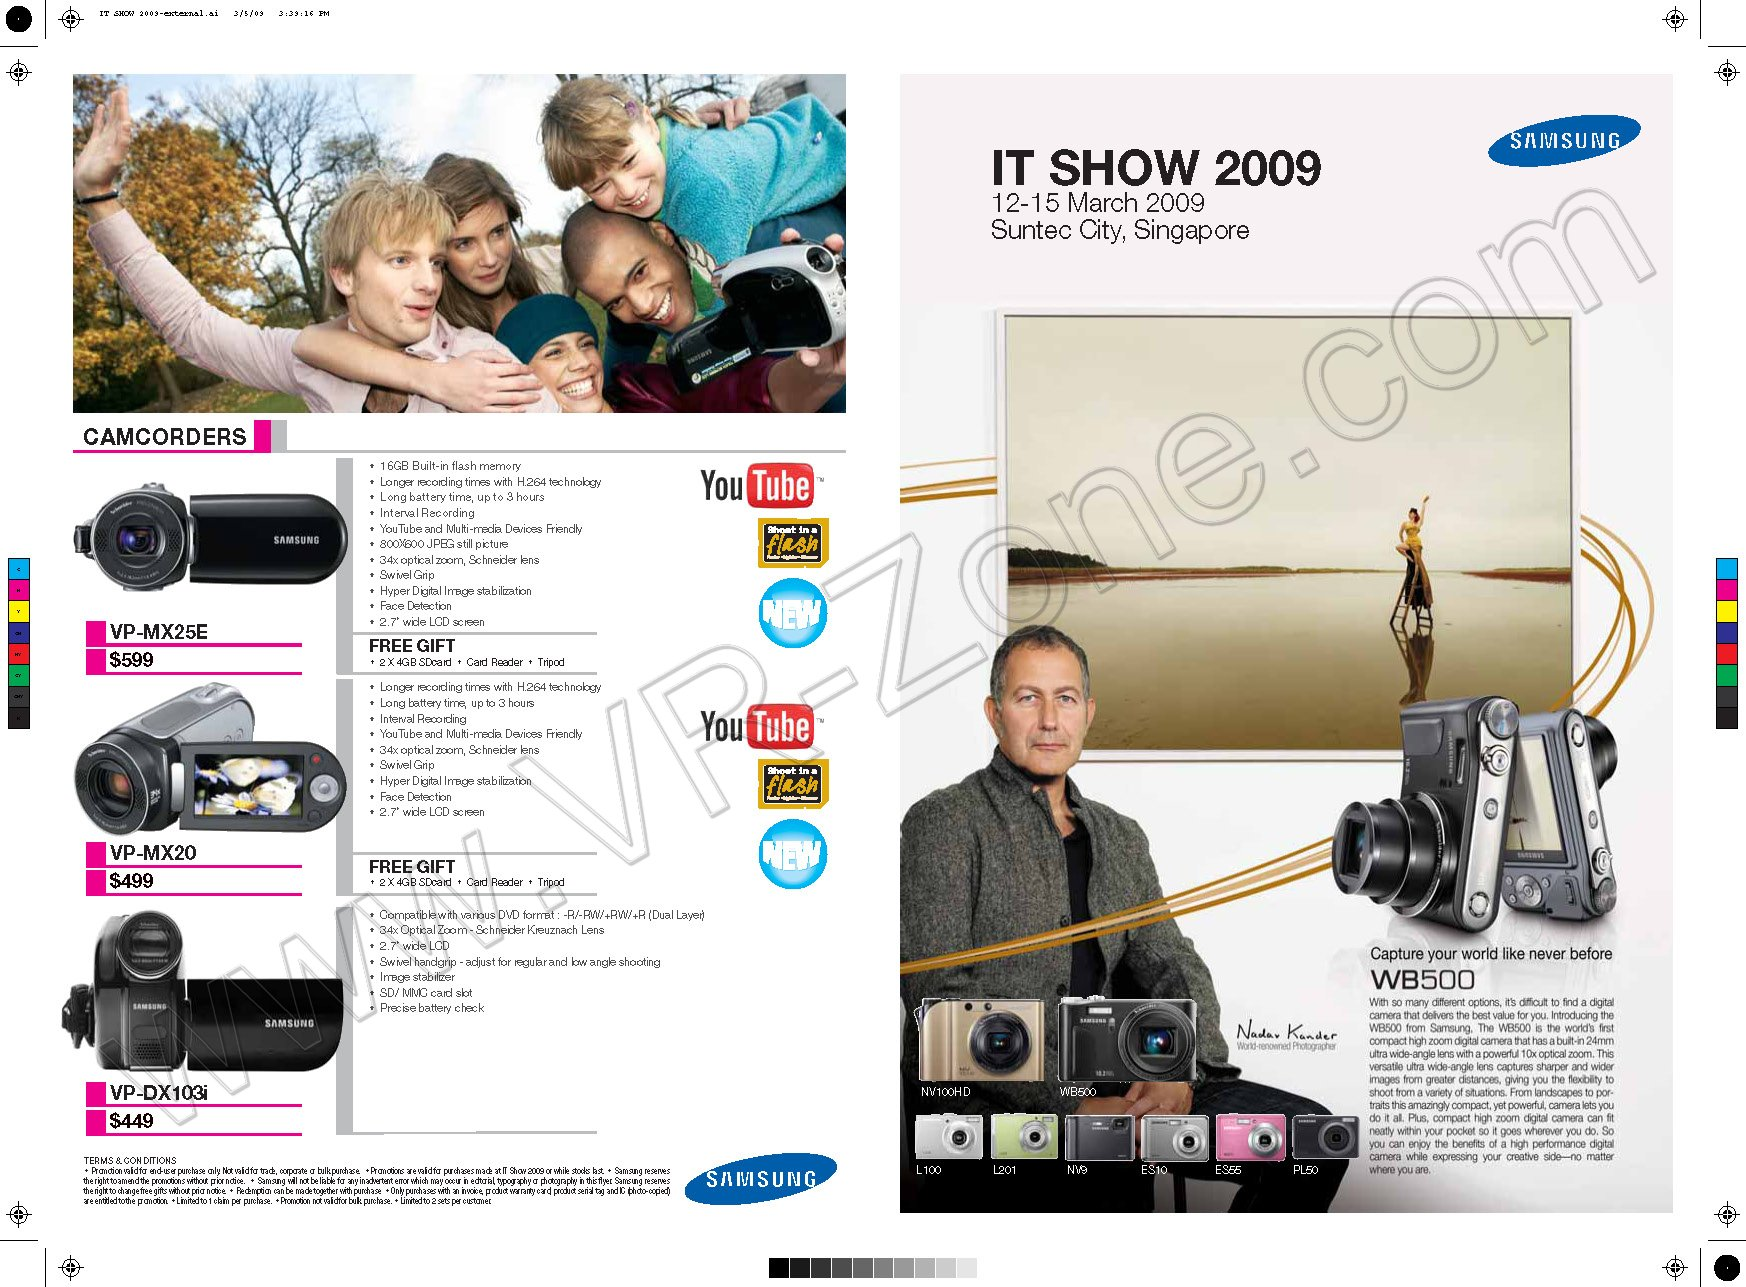 IT Show 2009 price list image brochure of Samsung Digicam Camcorders 2 VR-Zone